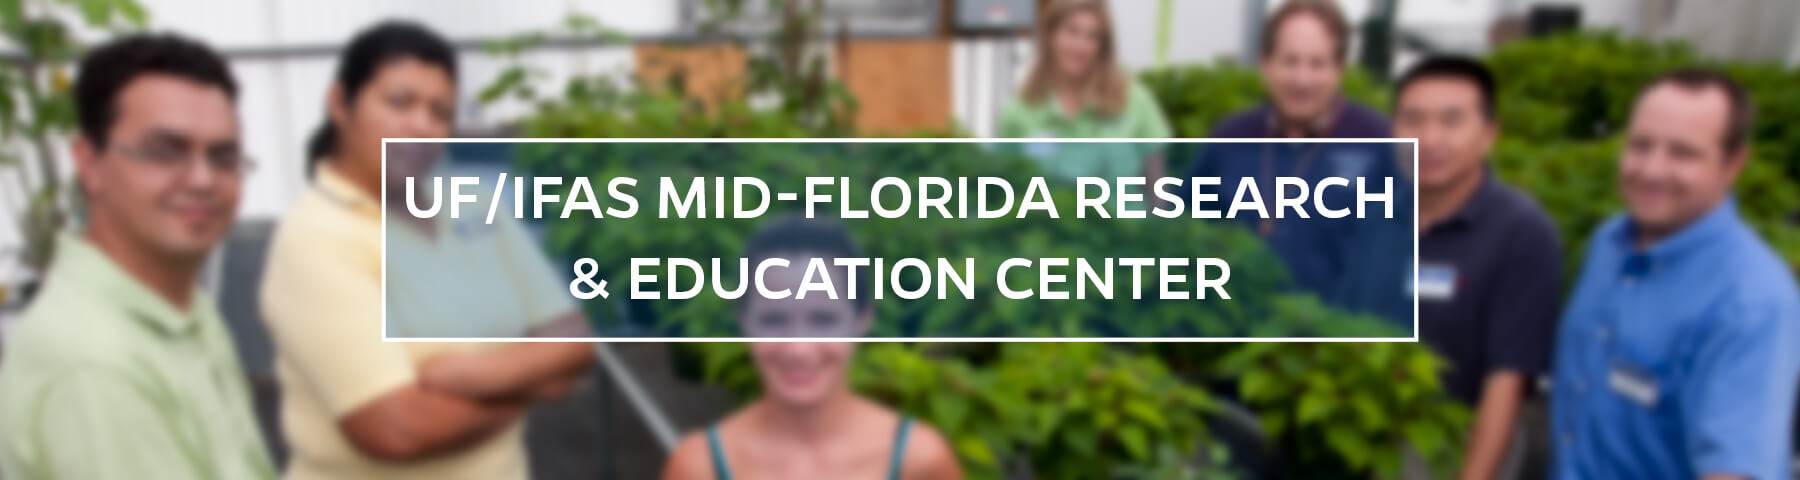 Mid-Florida Research and Education Center Header